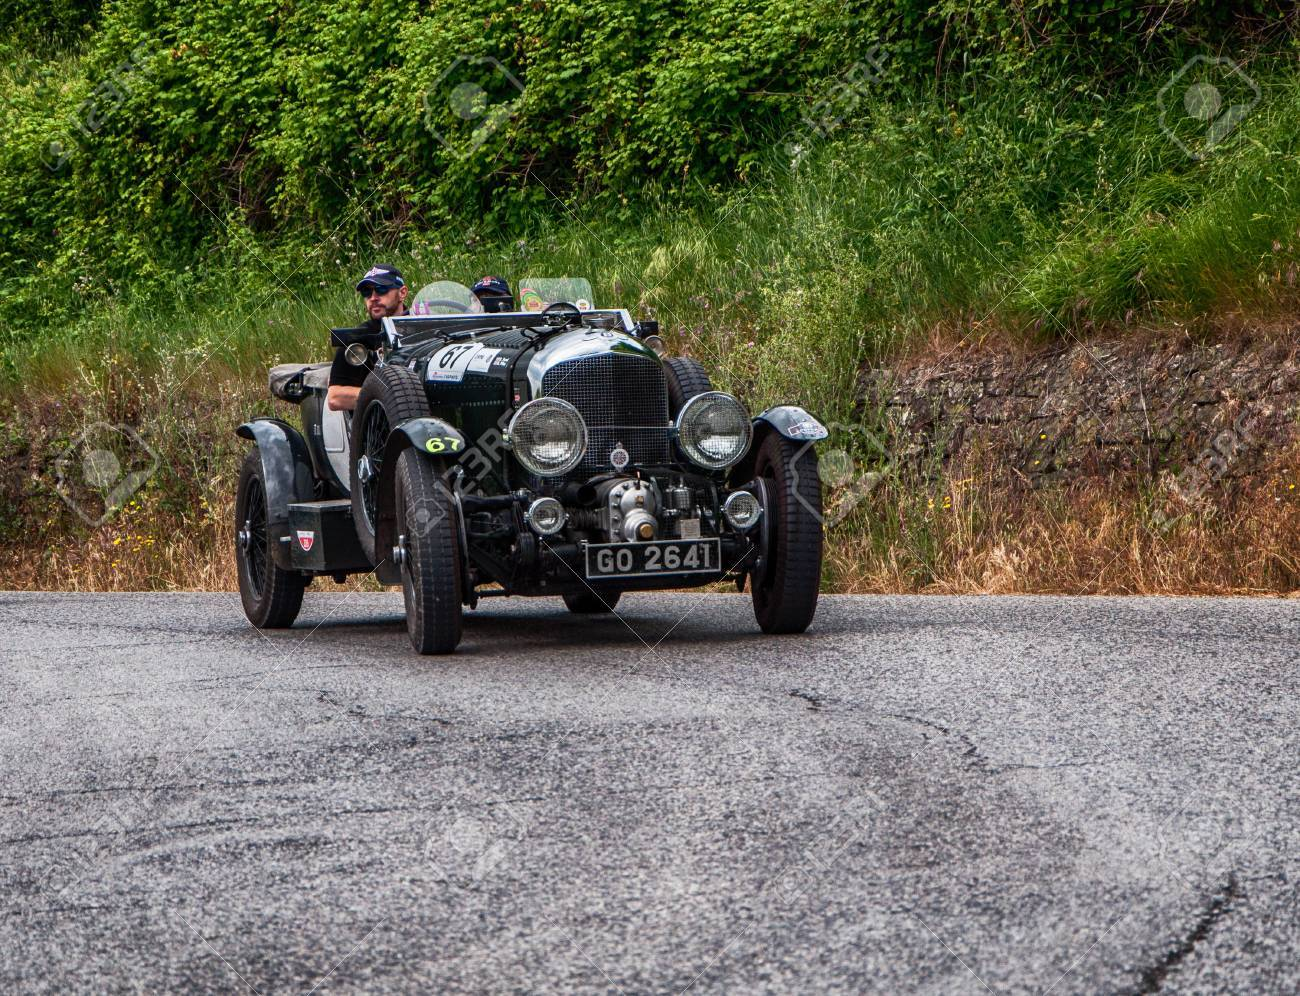 PESARO, ITALY - MAY 15: BENTLEY 4 5 Litre Supercharged 1930 old